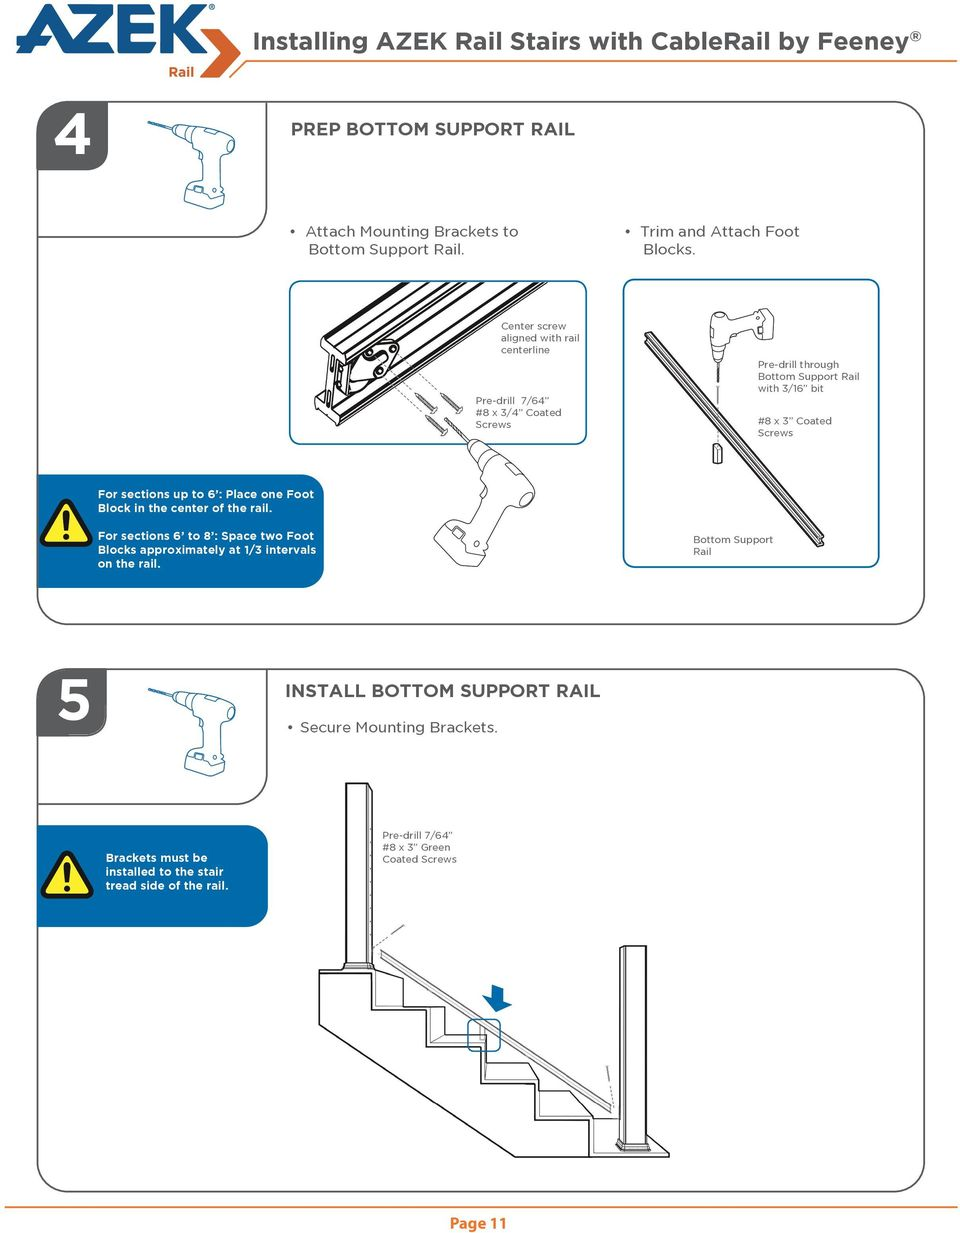 Azek Rail Install Guide Pdf Stair Diagram House Of Forgings Part Up To 6 Place One Foot Block In The Center For 12 Installing Stairs